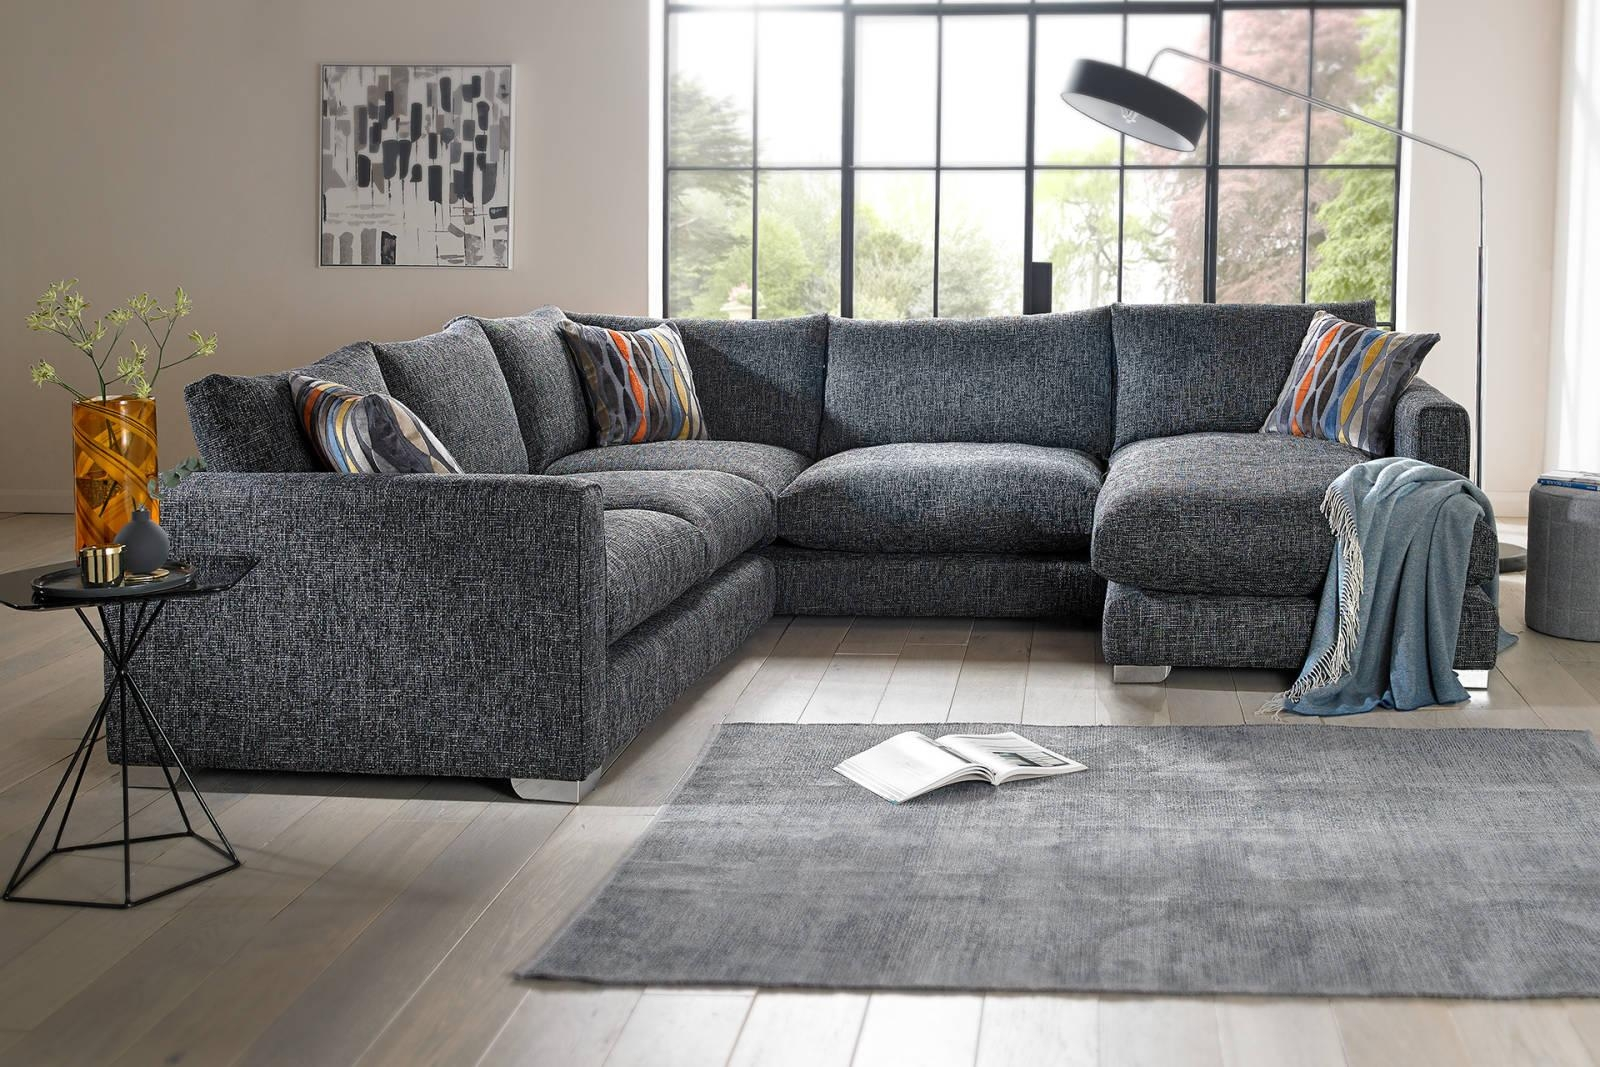 Fabric Sofas, Corners And Chairs | Sofology Throughout Fabric Sofas (Image 15 of 20)